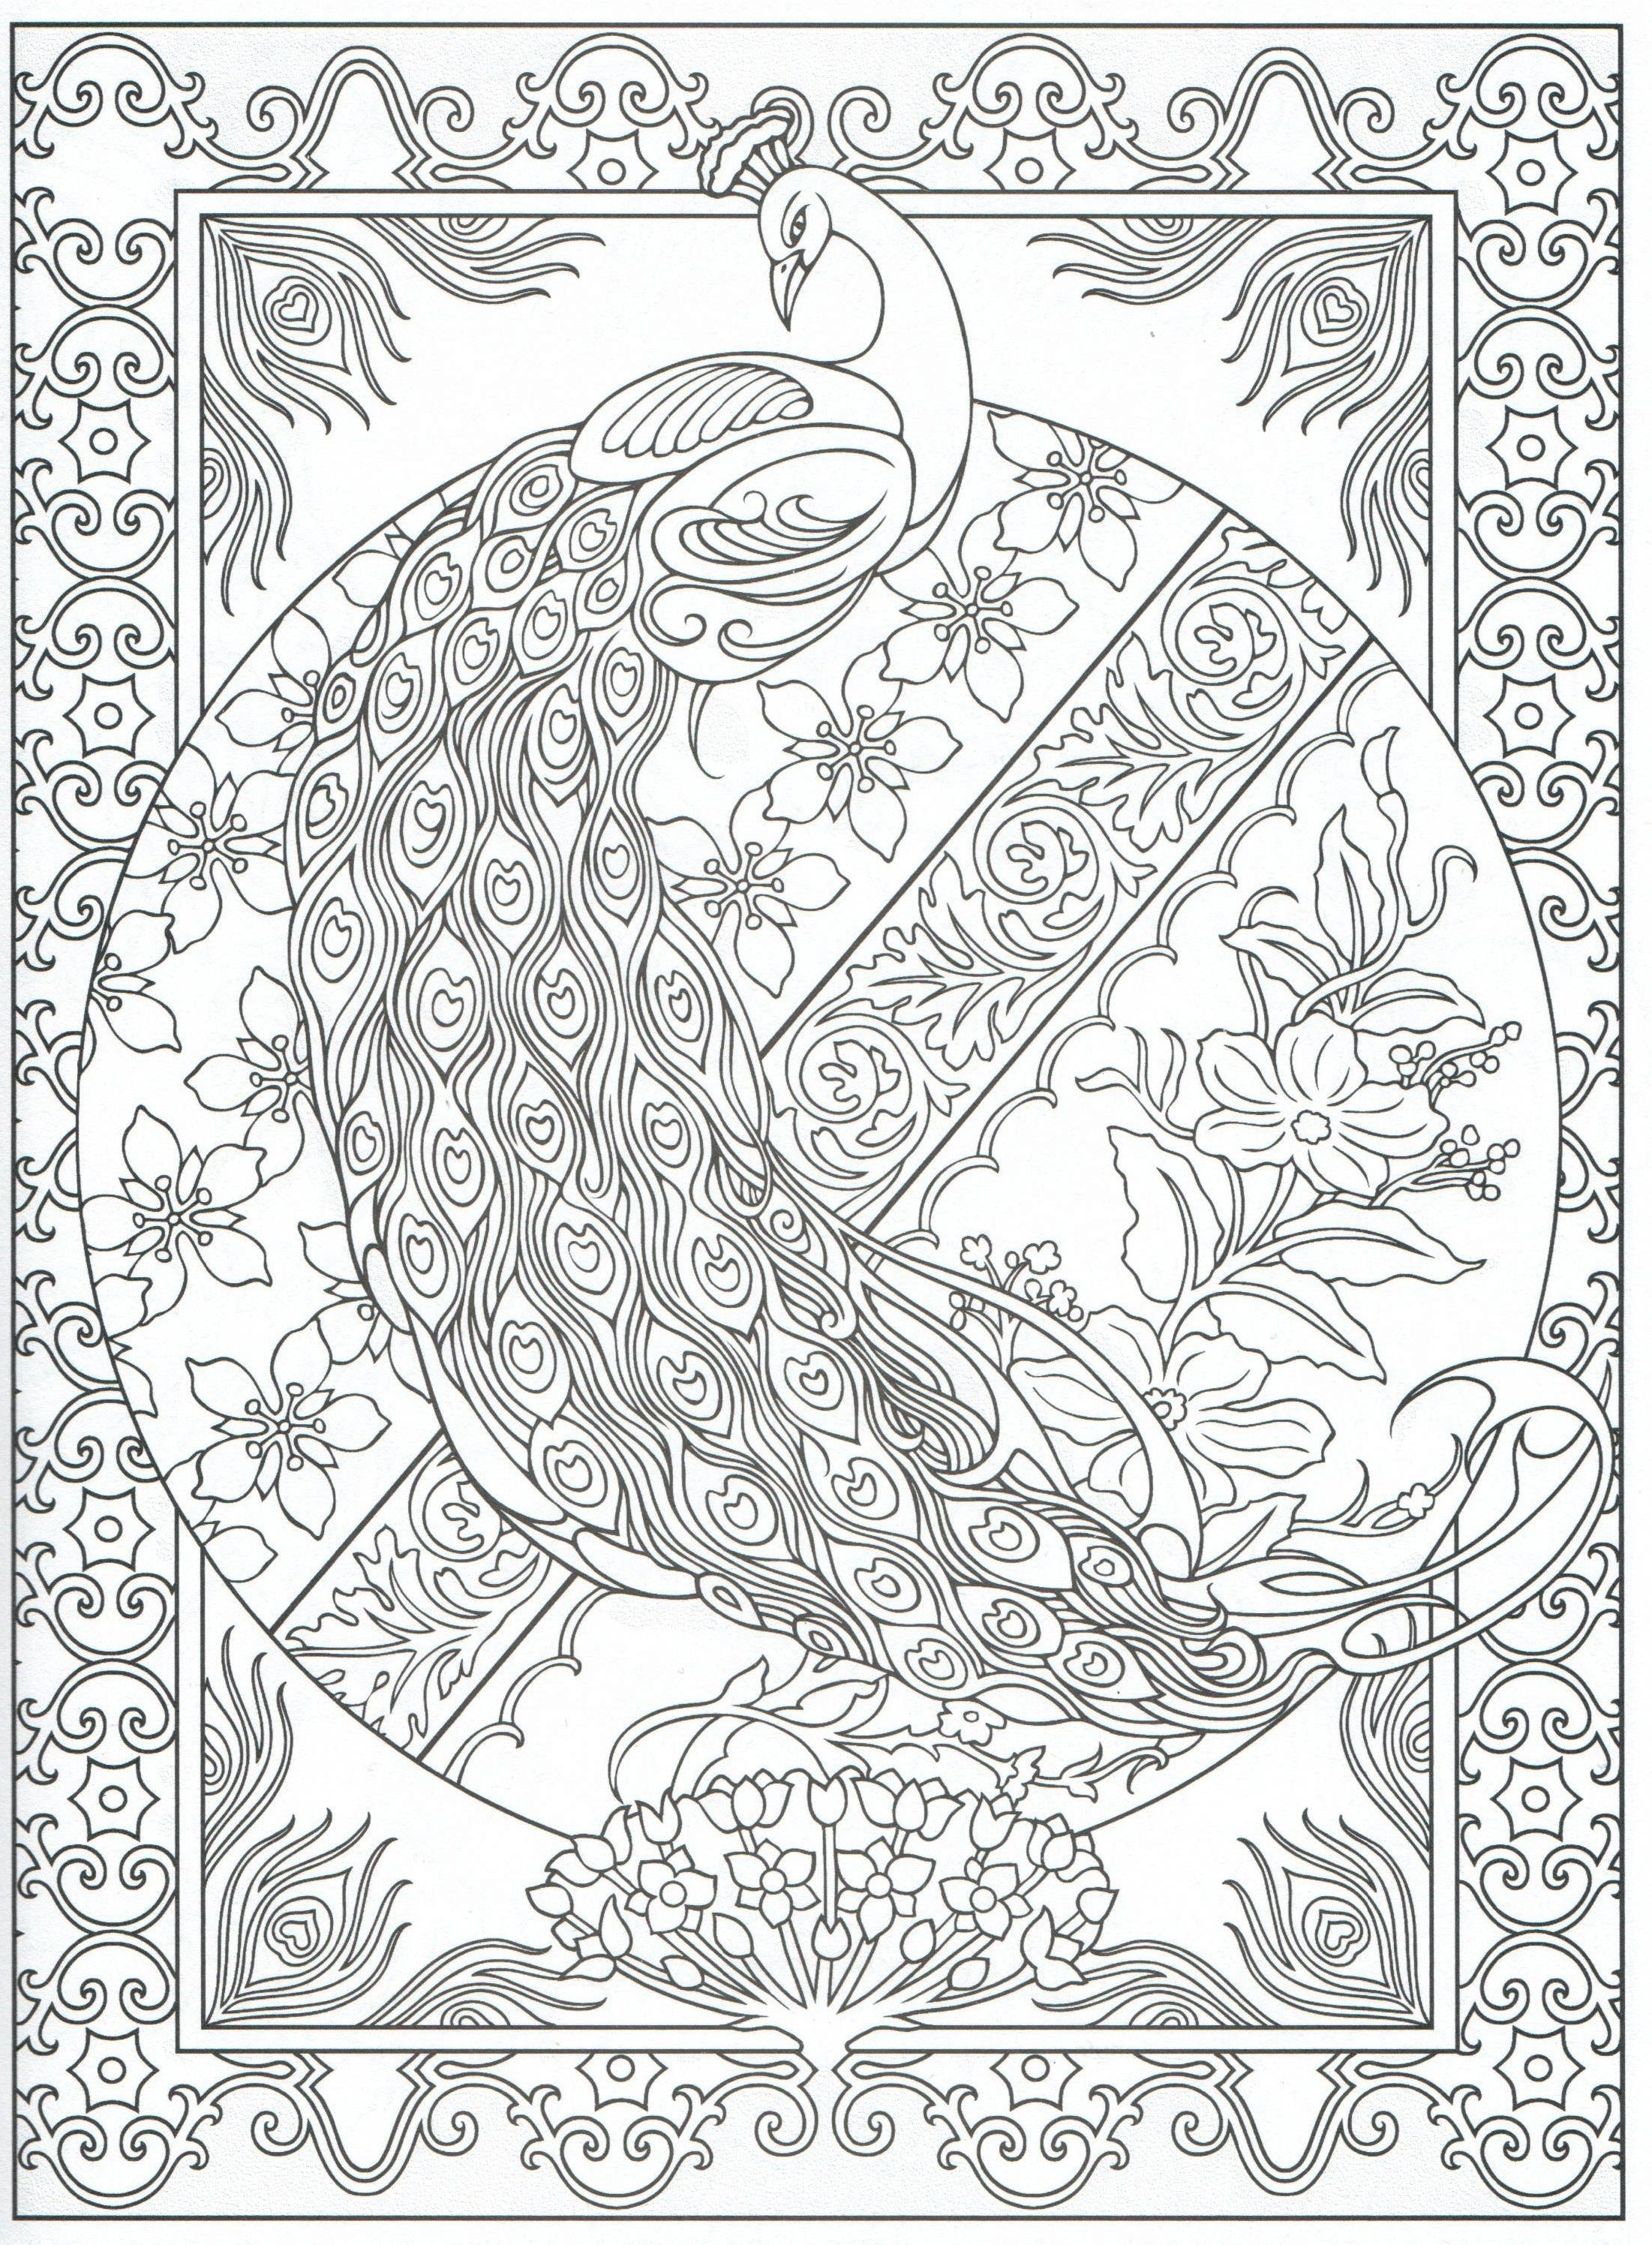 Peacock coloring page for adults 231 Color pages